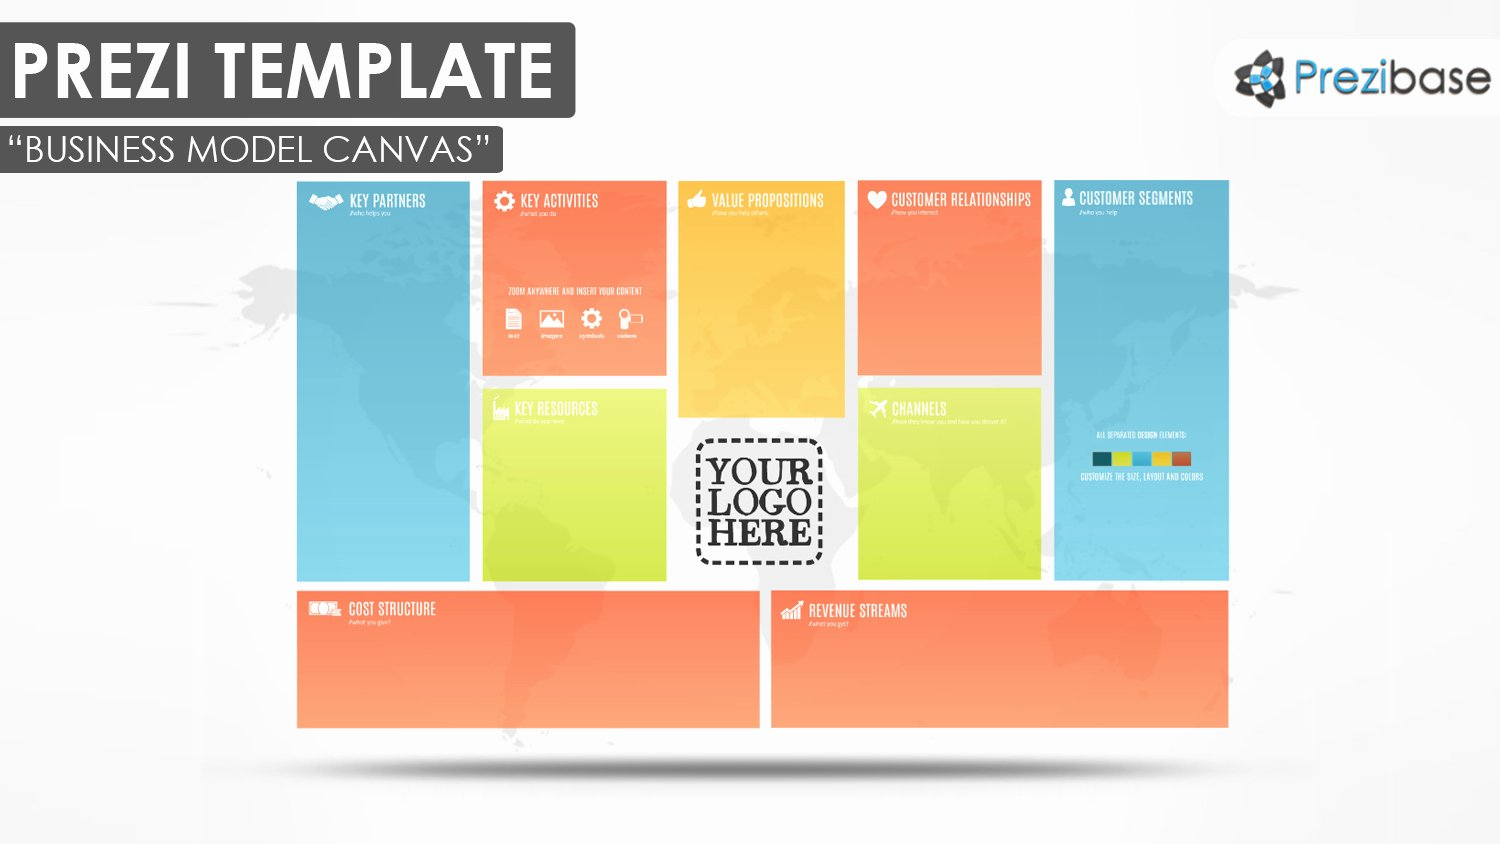 Business Model Canvas Prezi Template